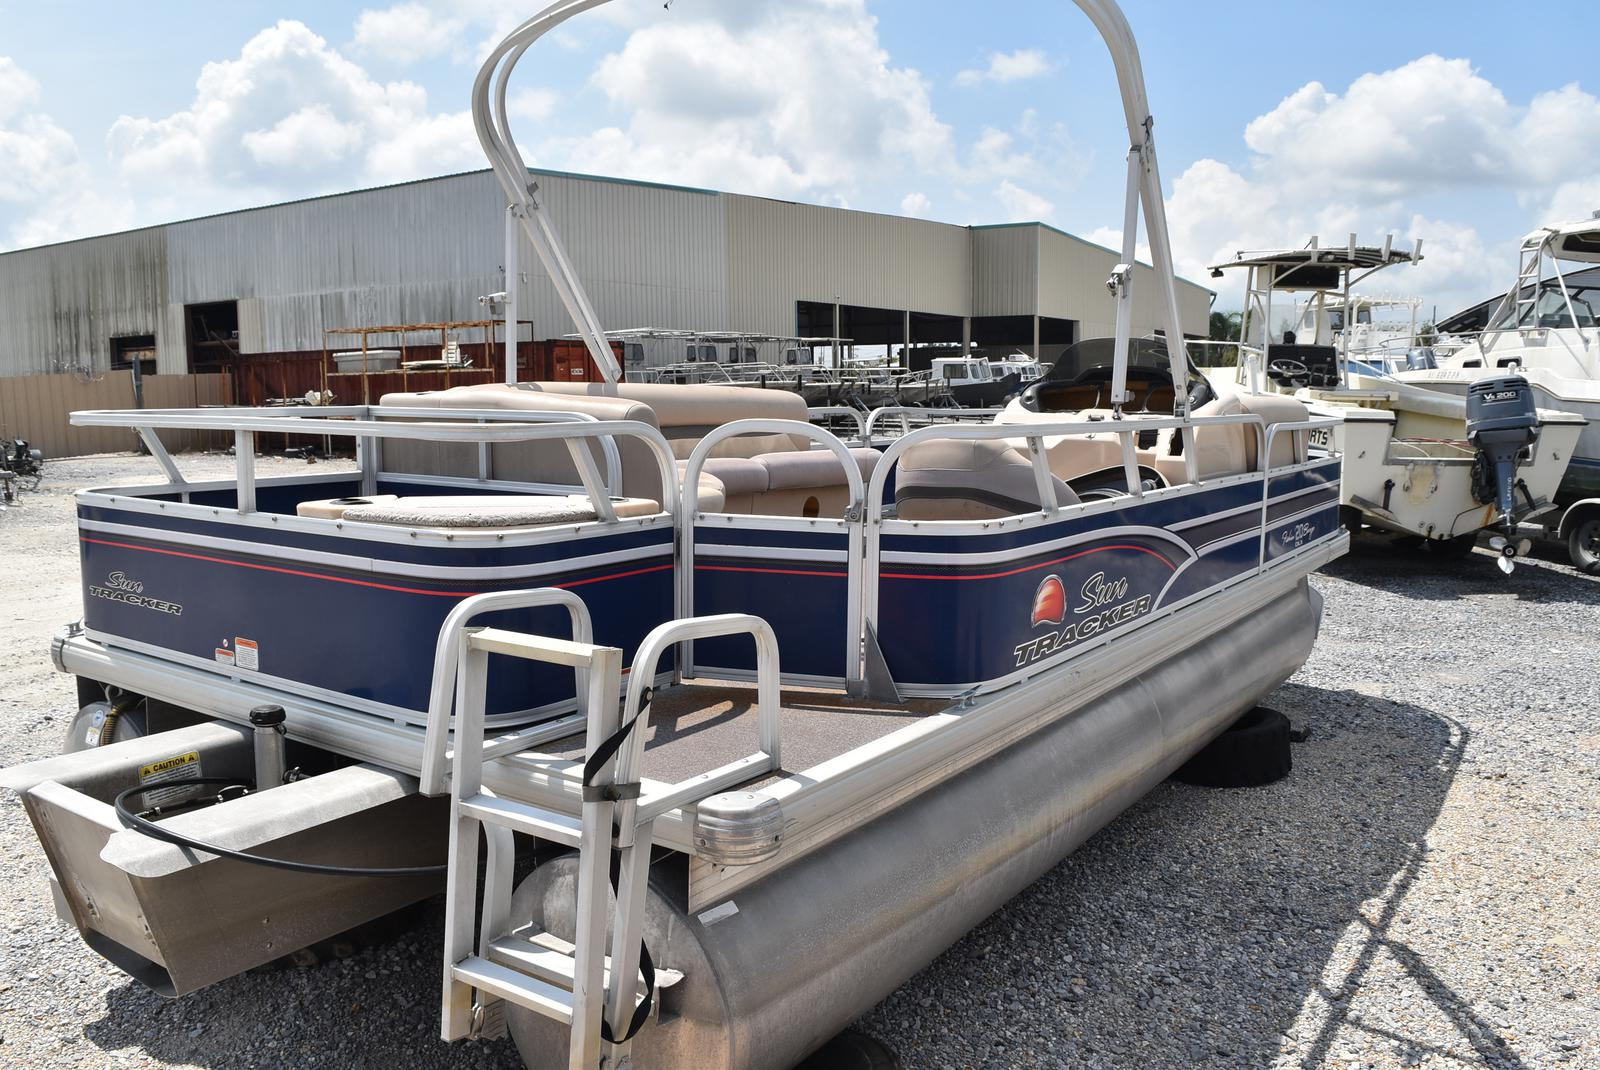 2015 Sun Tracker boat for sale, model of the boat is 20 Party Barge & Image # 2 of 6